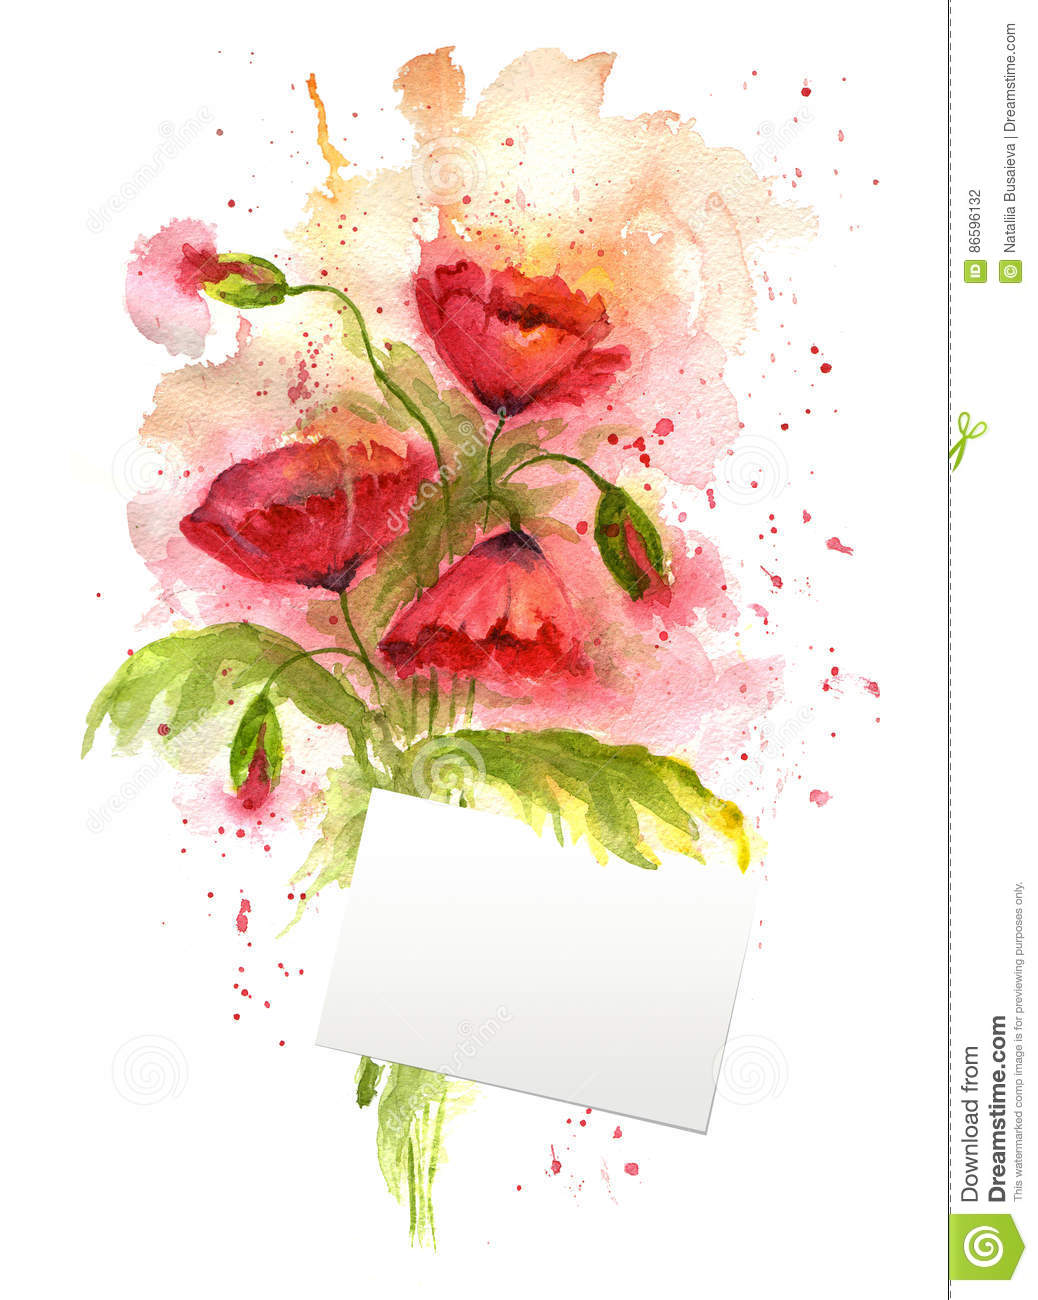 Watercolor Illustration Of Red Poppy Flowers And Small Card For